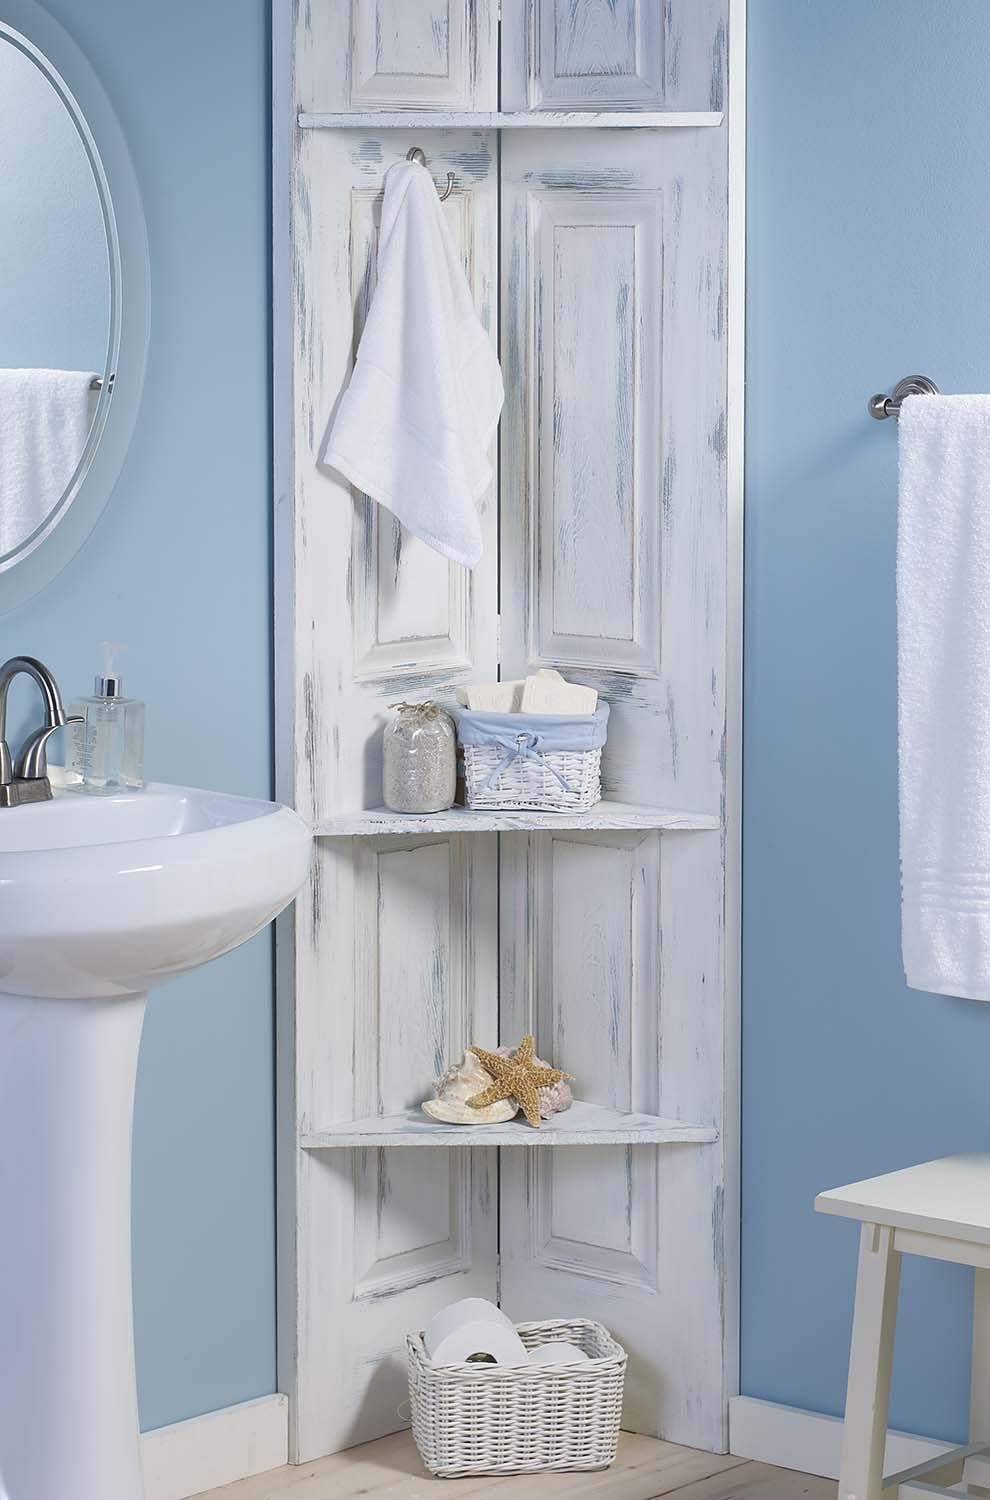 Build These Bathroom Corner Shelves from Bi-Fold Doors | Furniture ...